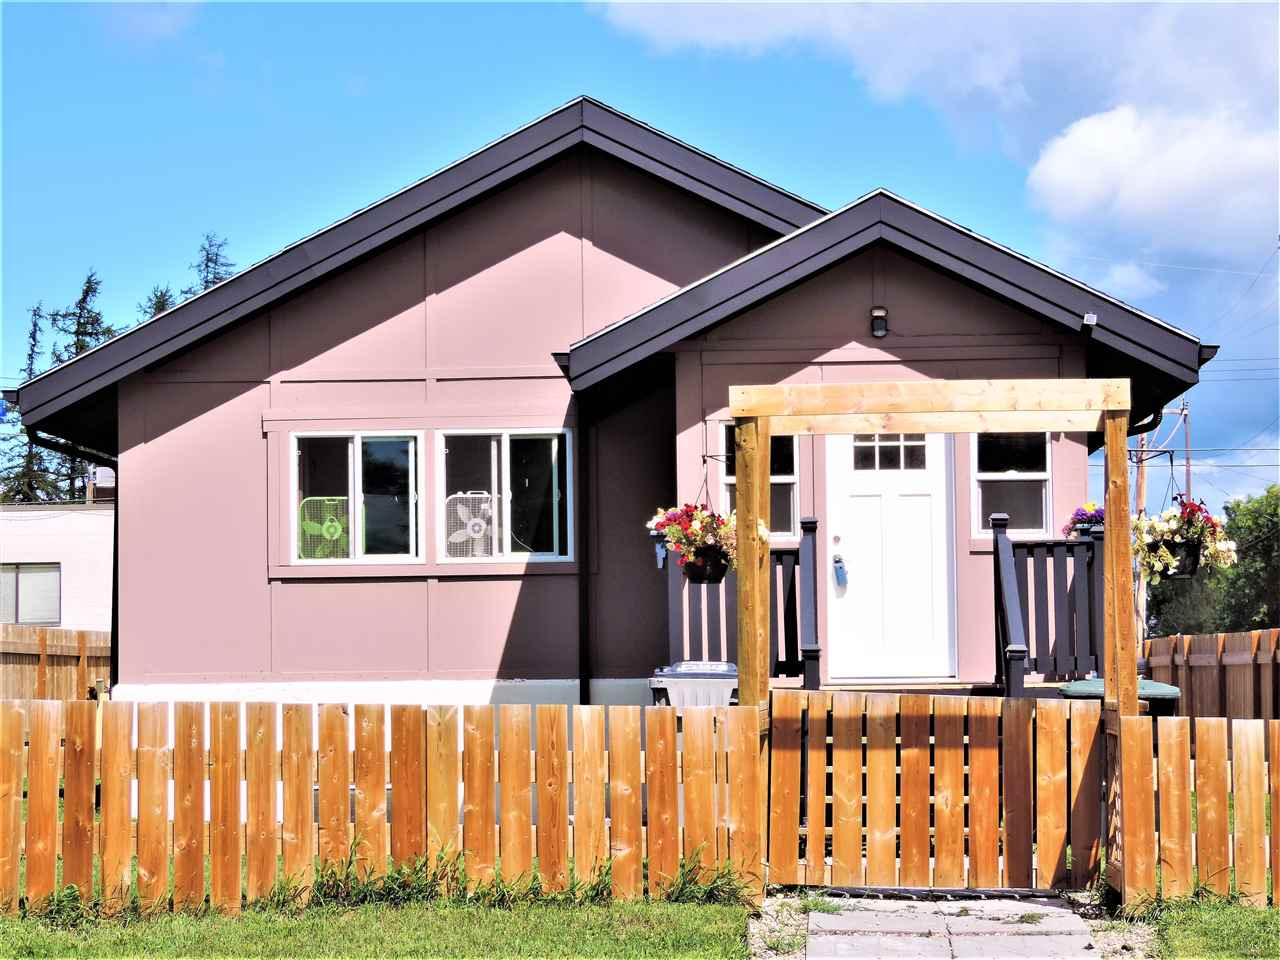 This is a VERY SPECIAL 2007 built home in the heart of Bon Accord! Vaulted ceilings on main, lots of fresh paint & reno's thru out. Raised 9 ft ceilings in basement! A really exceptional home priced to sell! Modern construction; On Demand Hot Water!; Coffered Ceiling Designs w X Beams for lovely interior architectural features; Large Double Garage; Great Deck & Extra Parking in Yard round out this move in ready bungalow! Well Maintained. Clean. Functional. Well Priced with a open functional floor plan. Great for entertaining or relaxing; A Place to Call home! Close to Edmonton, closer to the country & all it brings with it.  Call me for more info on any aspect of this home!